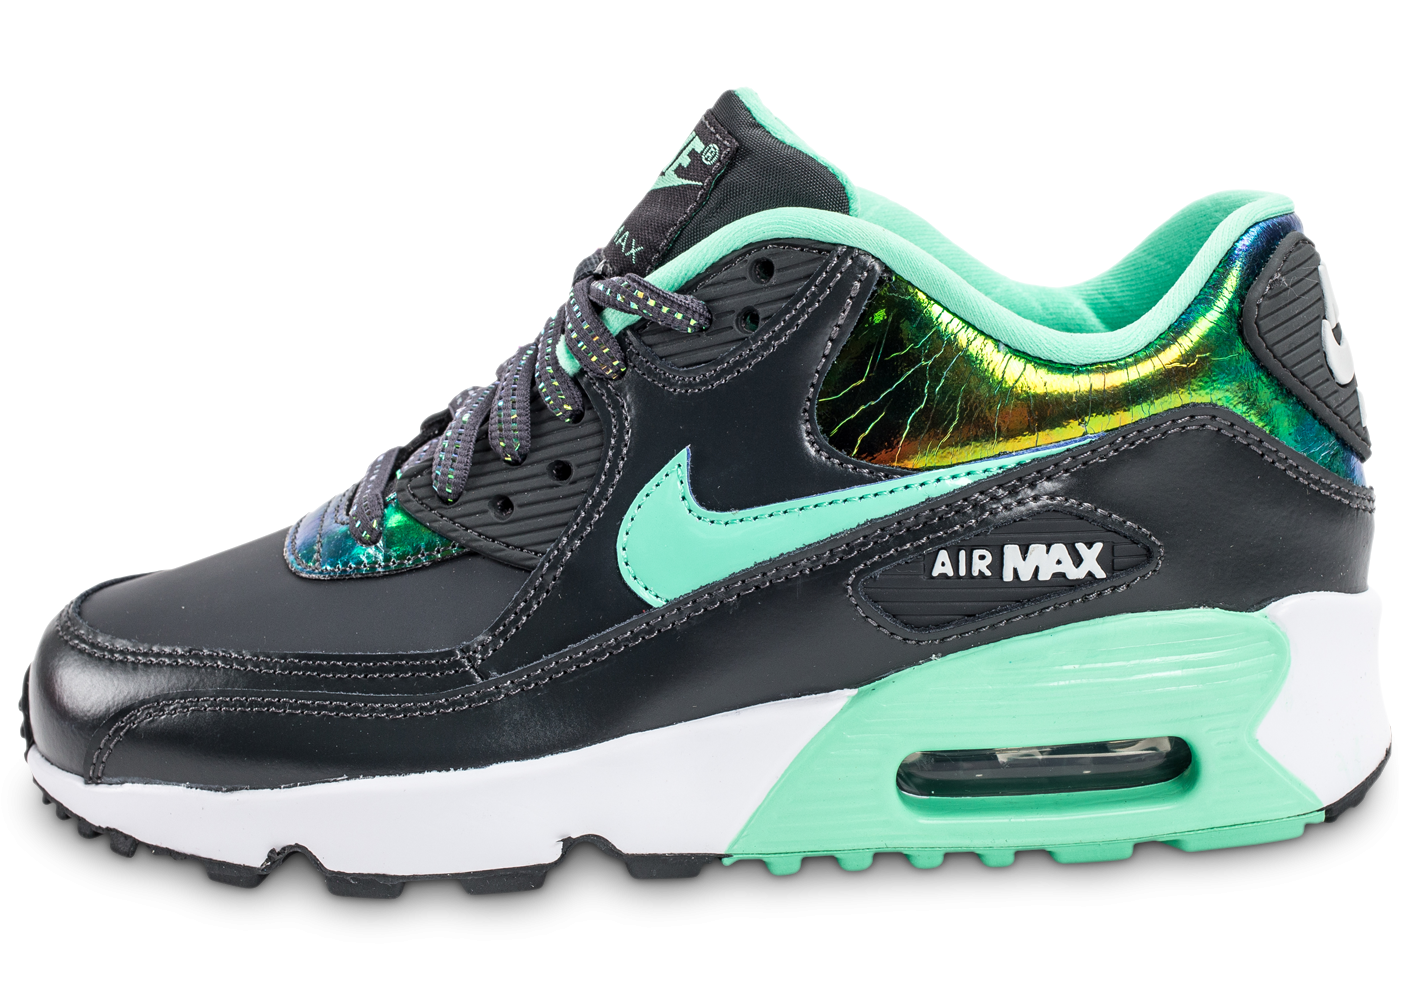 super popular ca0bd 15efa Acheter Nike Air Max 90 Homme Boutique Tea1117